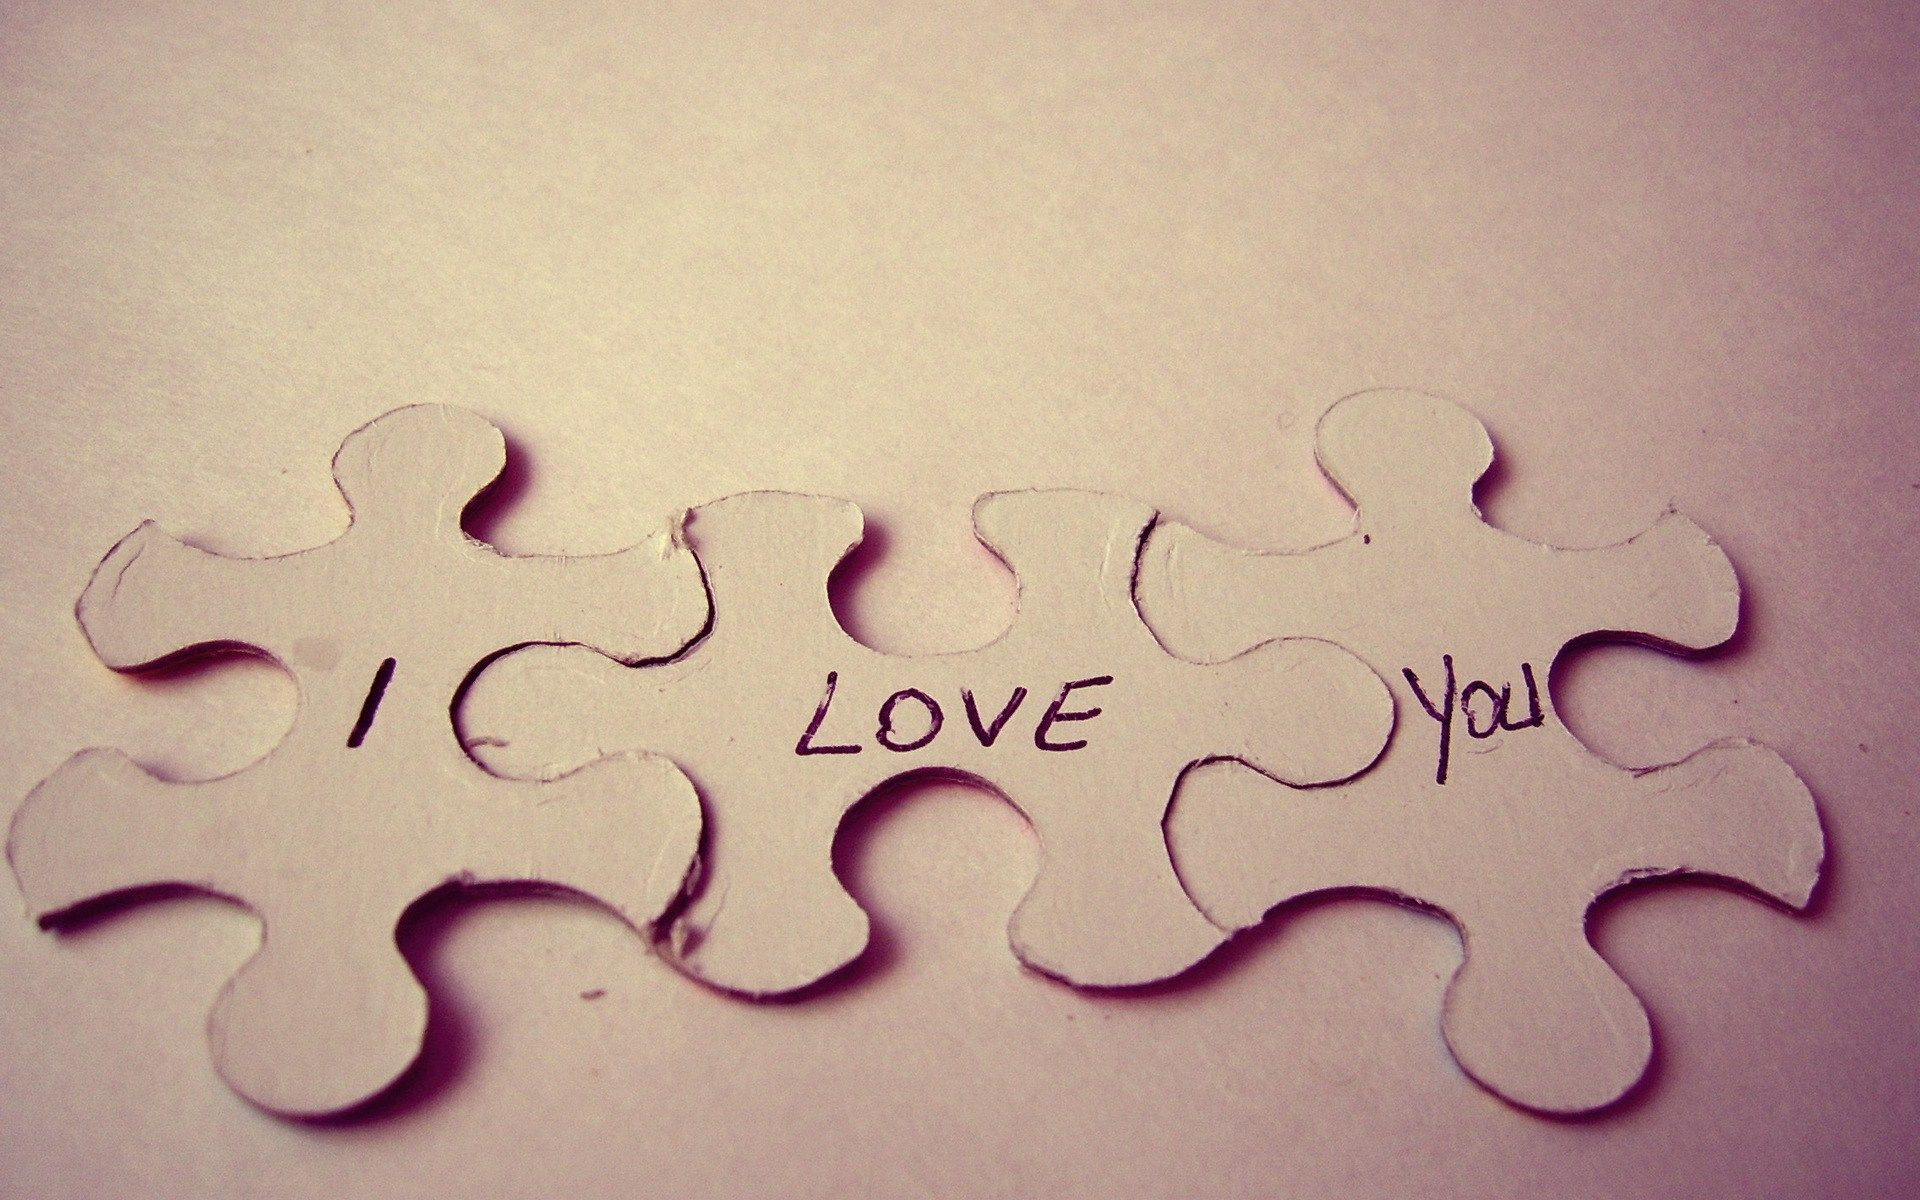 Hd wallpaper i love you - Hd Wallpaper I Love You All I Just Want U To Know That 3